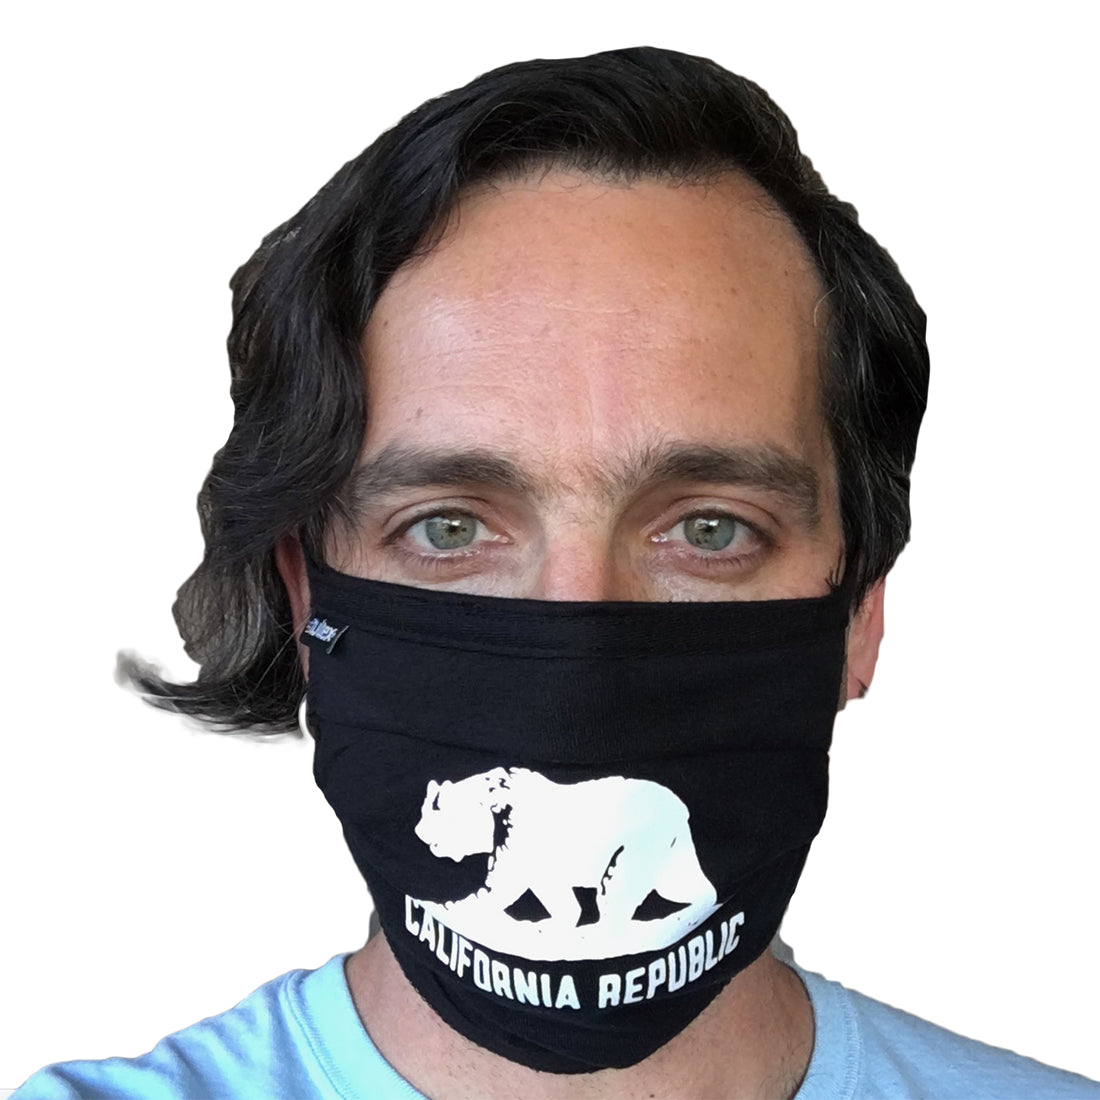 California Republic Premium Black Face Mask